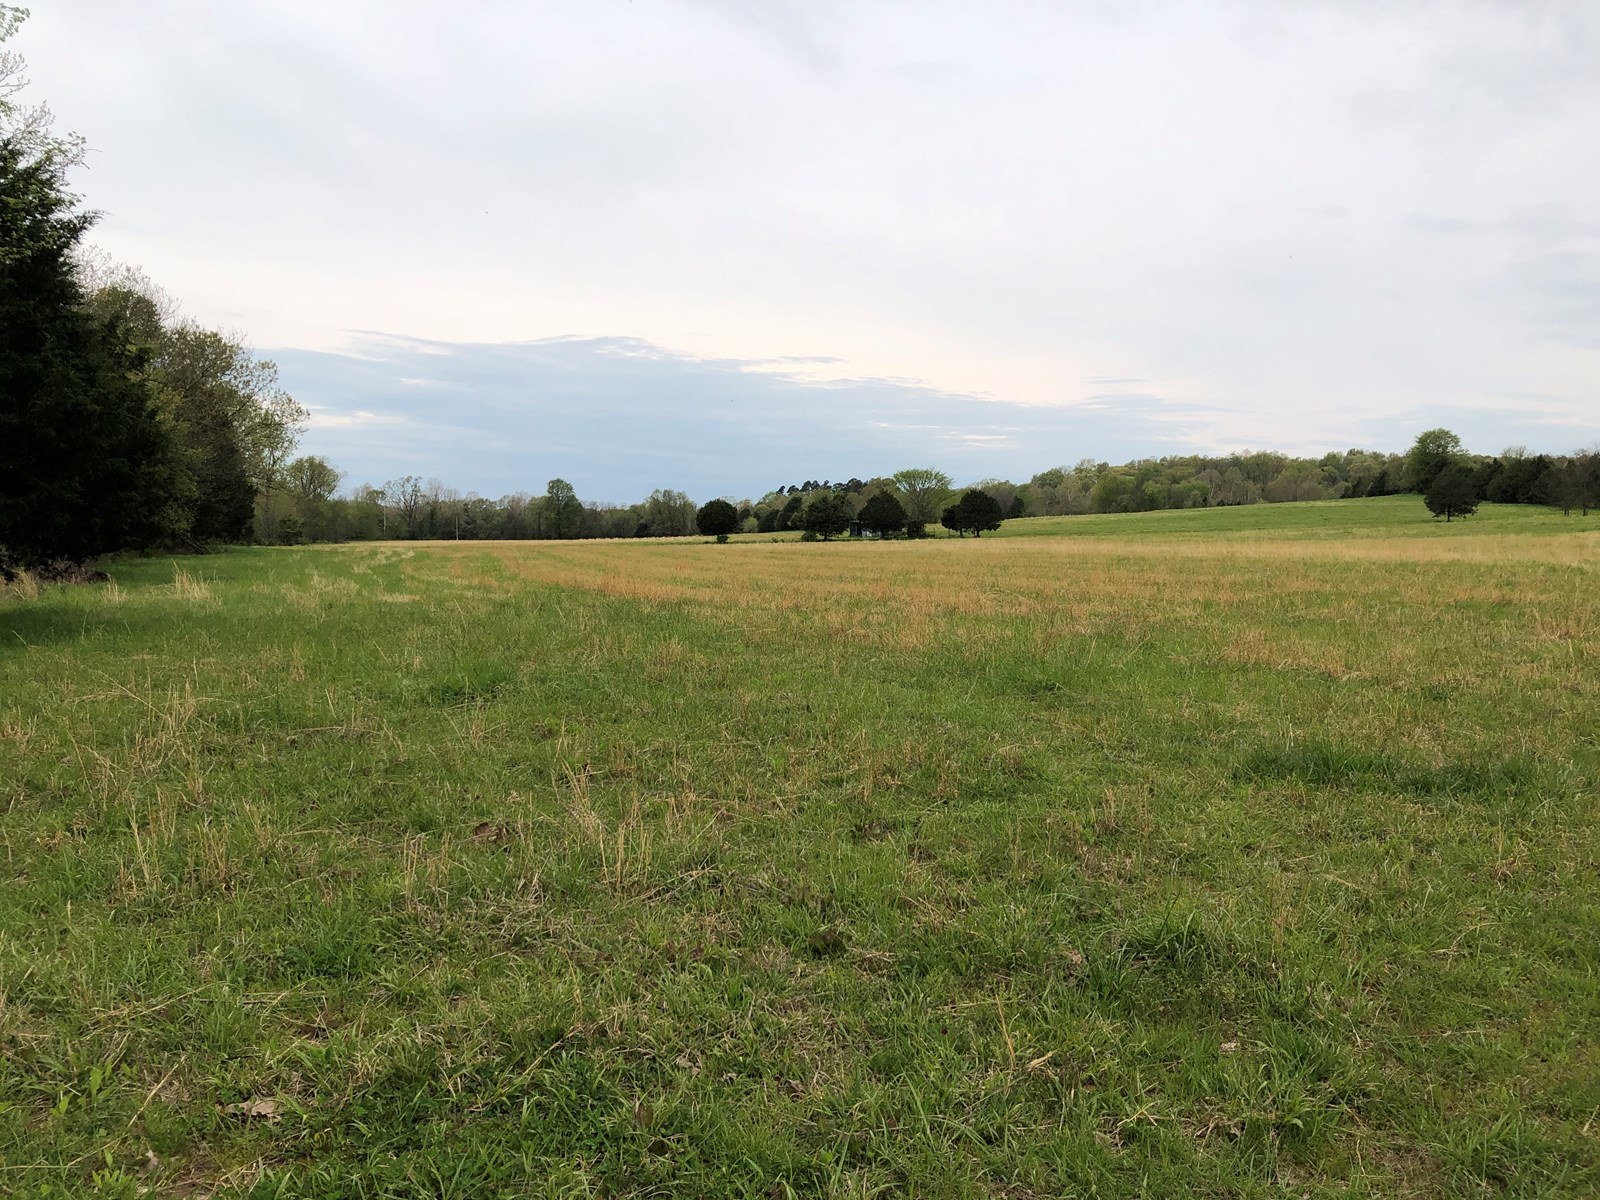 180 ACRE HUNTING PROPERTY/CATTLE FARM FOR SALE!